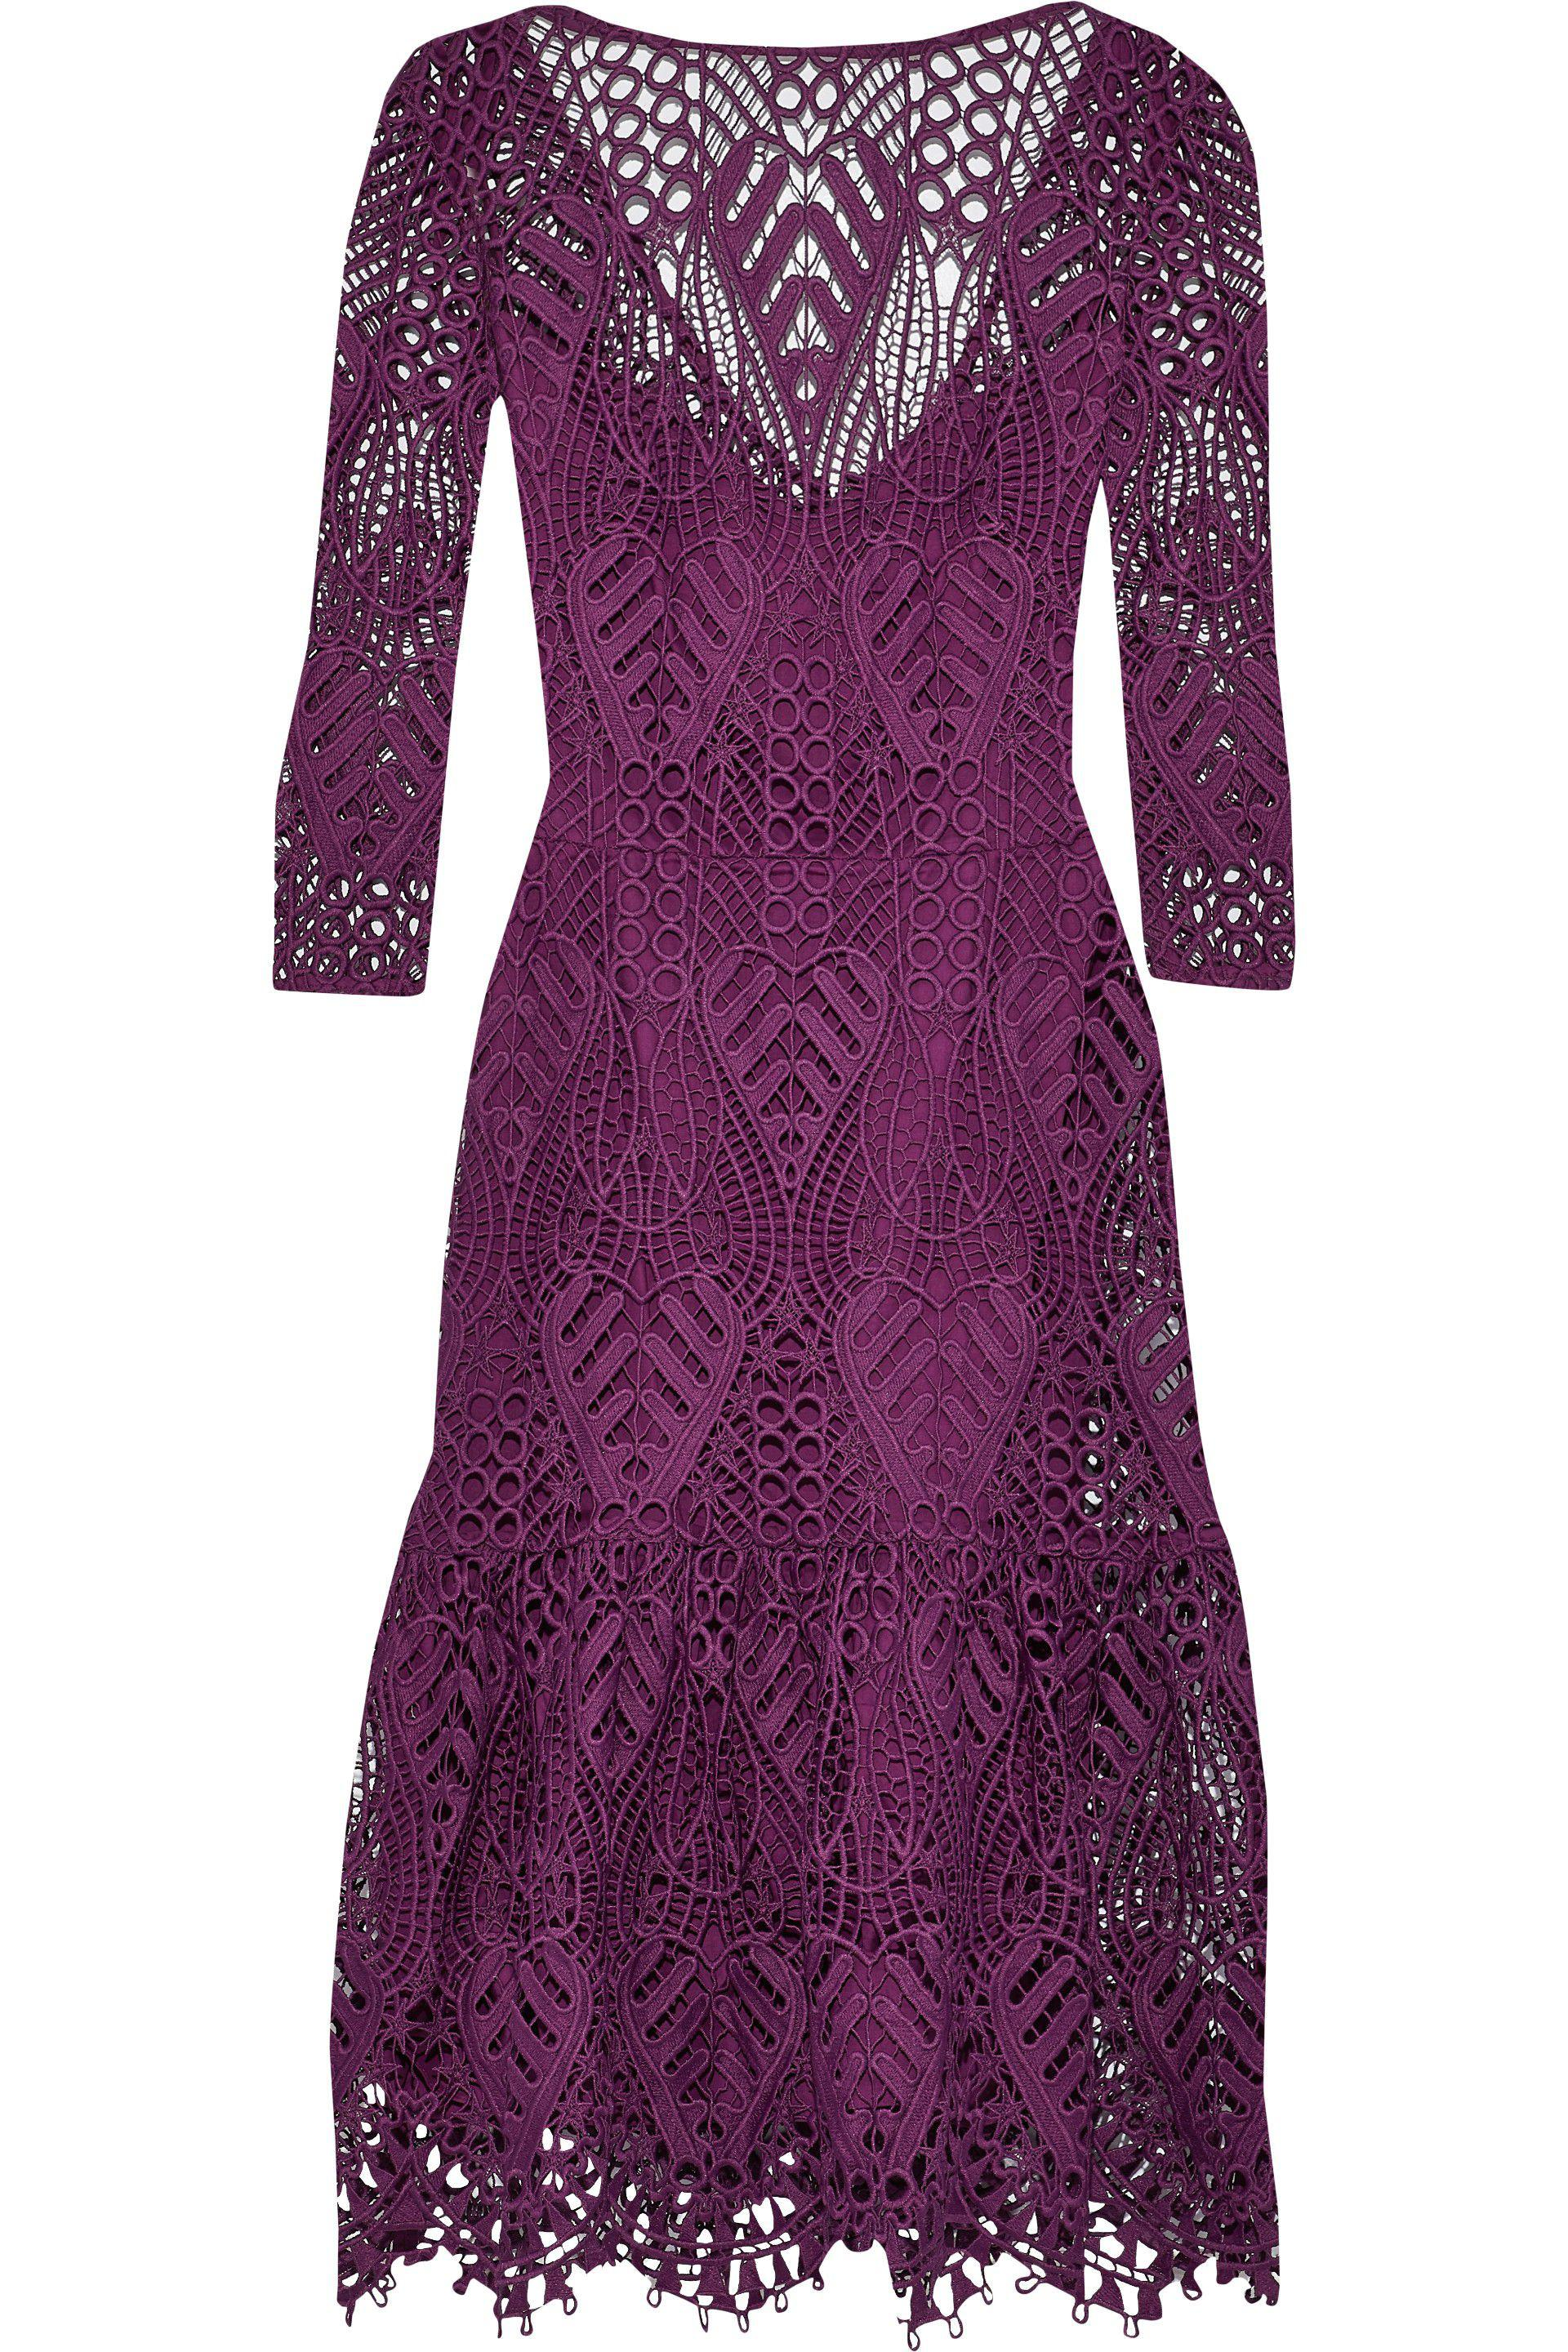 Temperley London Woman New Moon Guipure Lace Dress White Size 10 Temperley London 0ZZPsD1